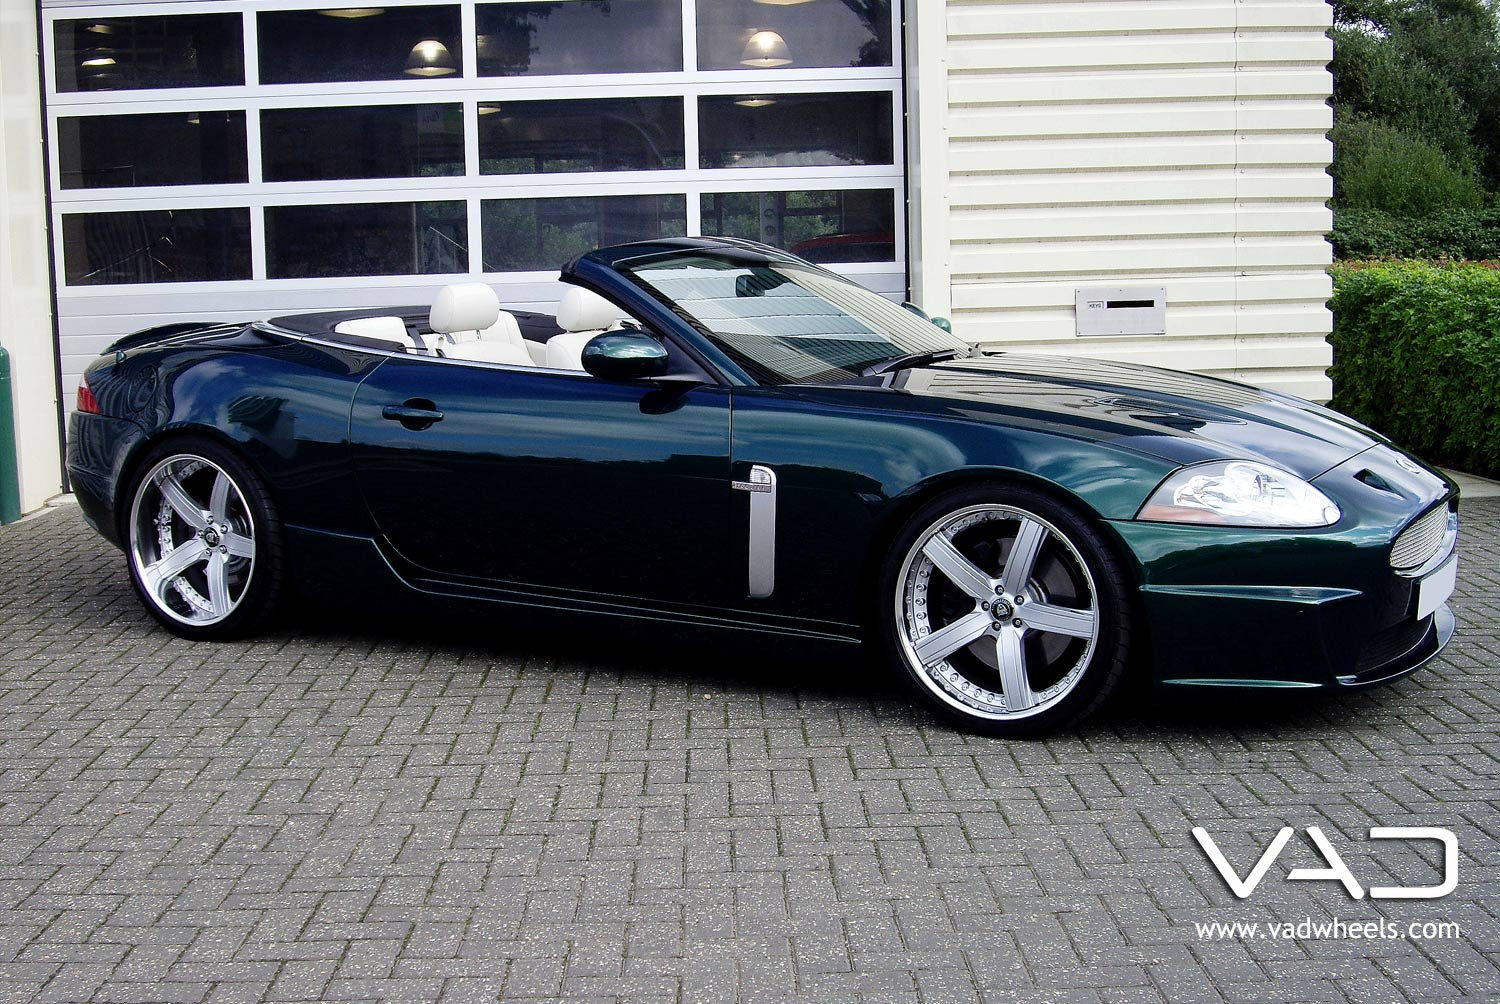 Jaguar XKR Cabriolet Fitted With 20 In Trafficstar STR